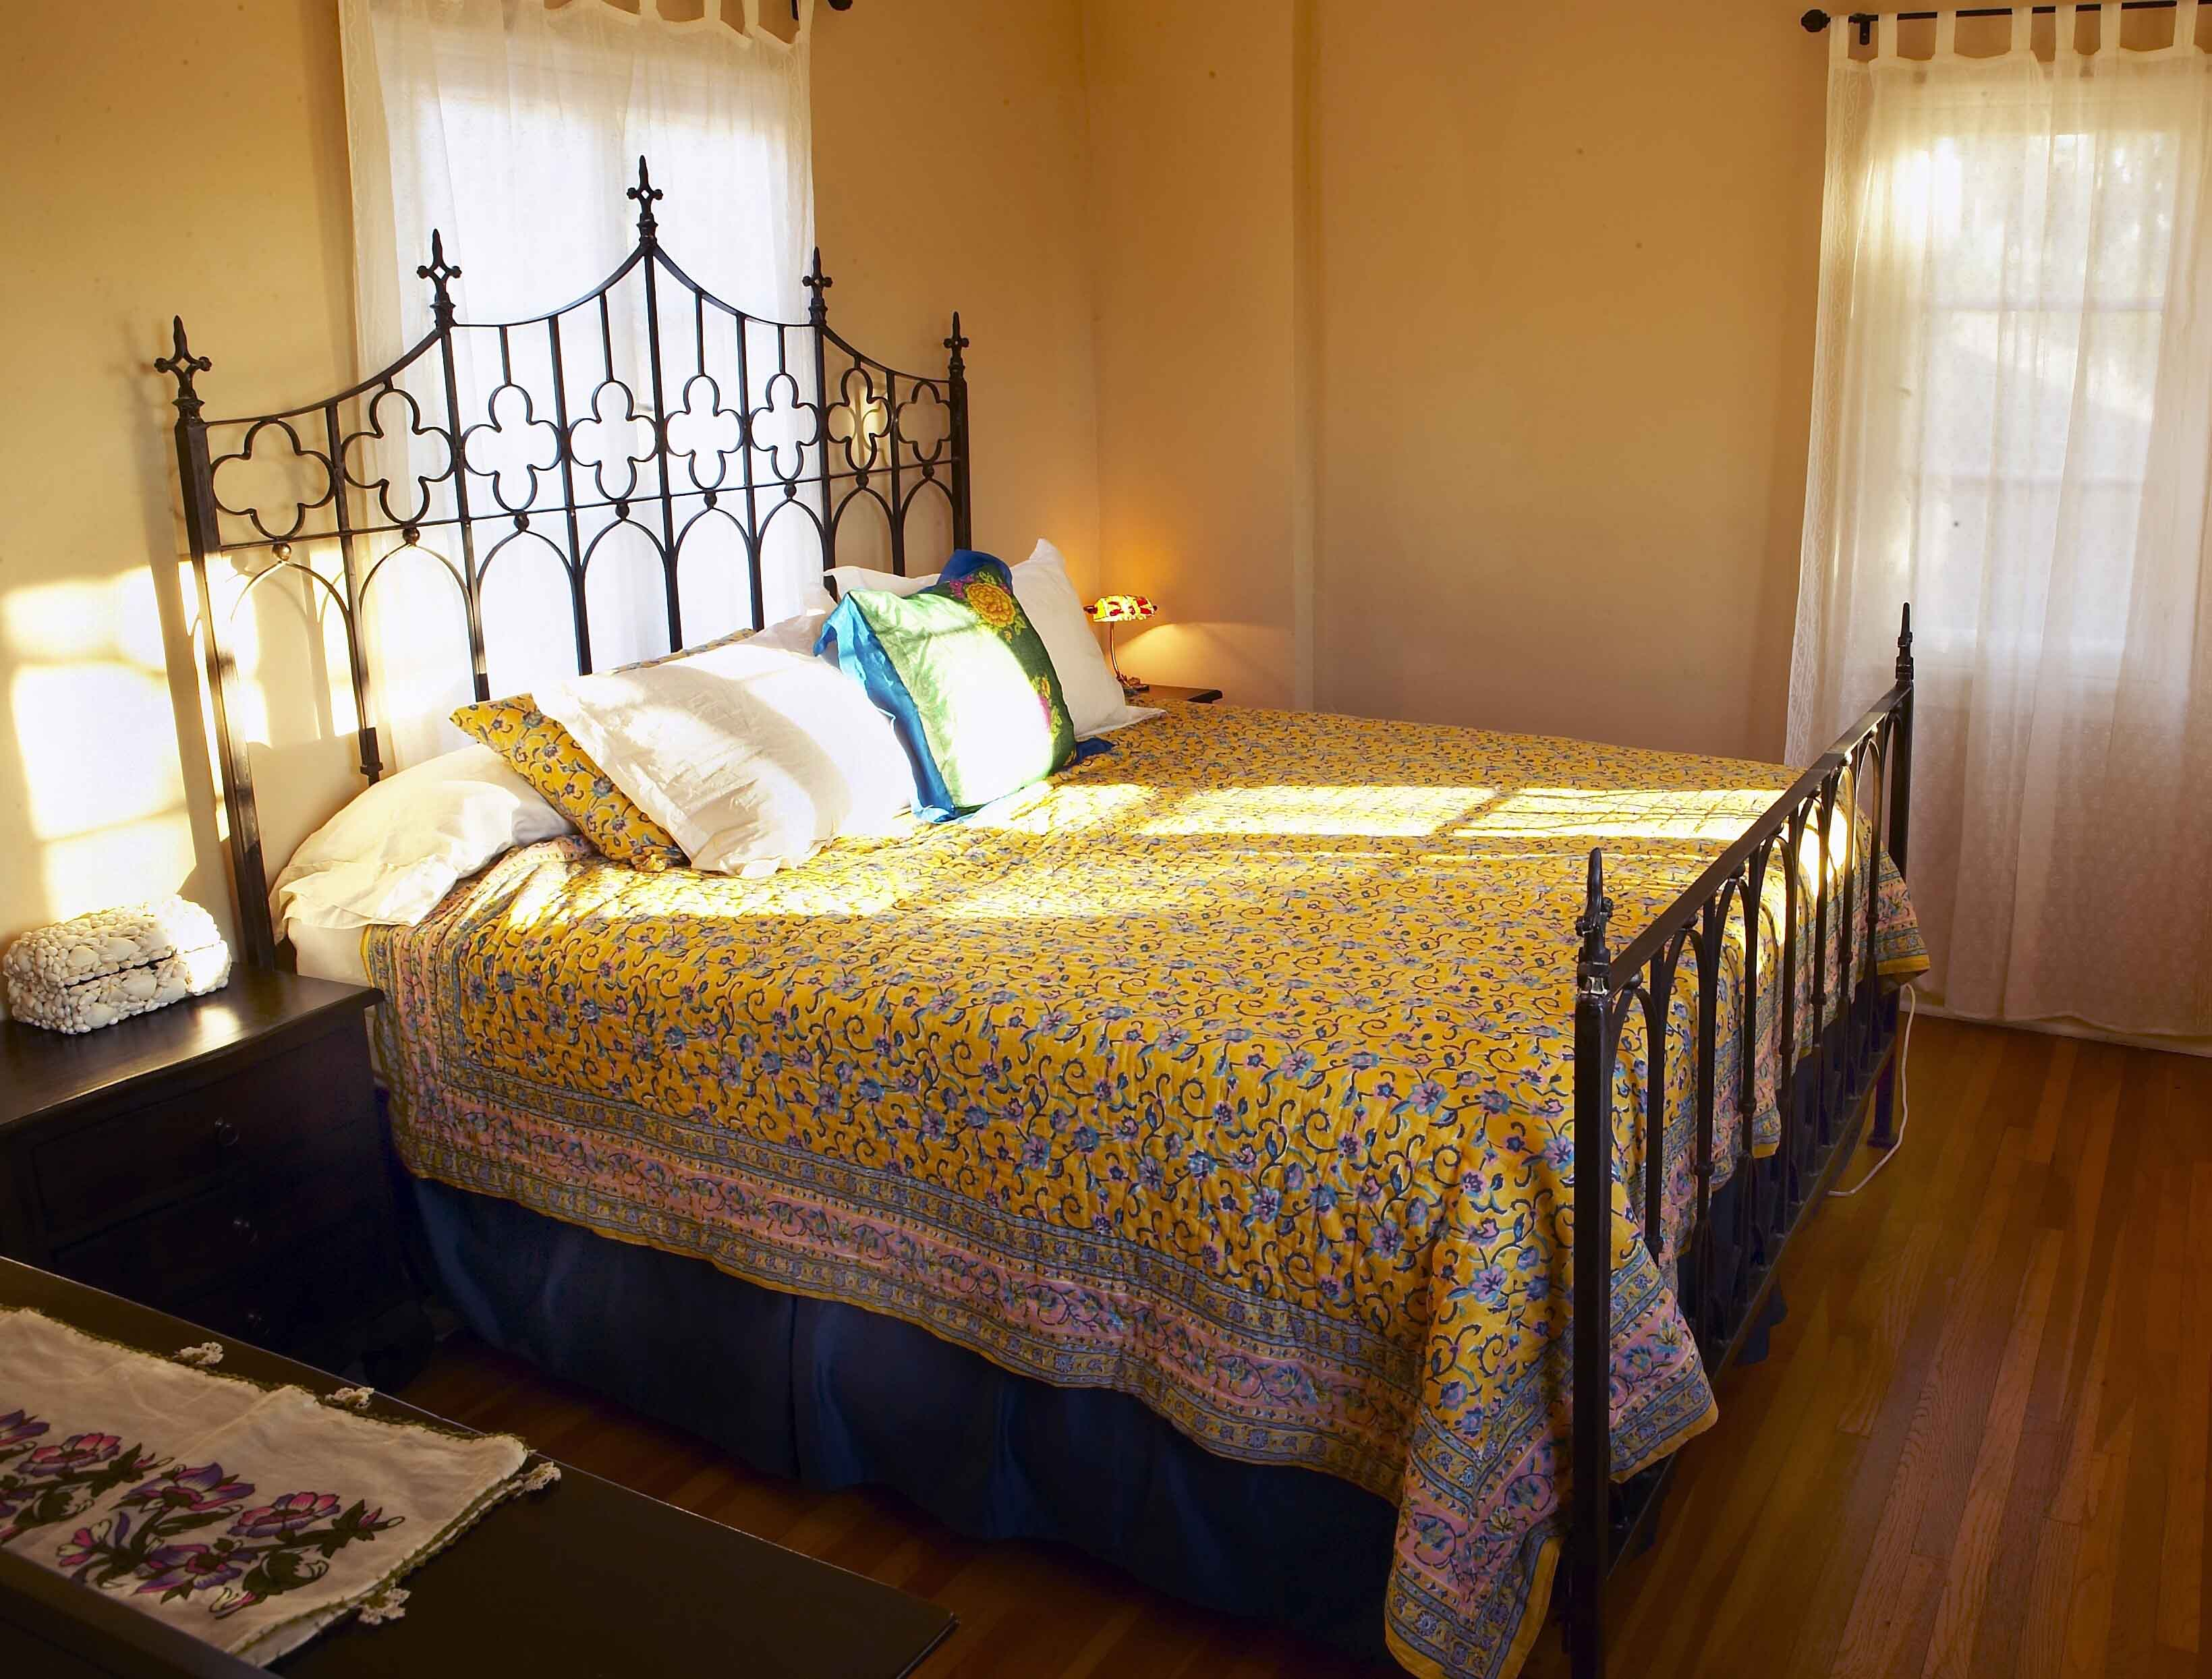 Metal King Headboards Wrought Iron Bed Headboards Queen: Furthur Wrought Iron And Carved Teak Beds